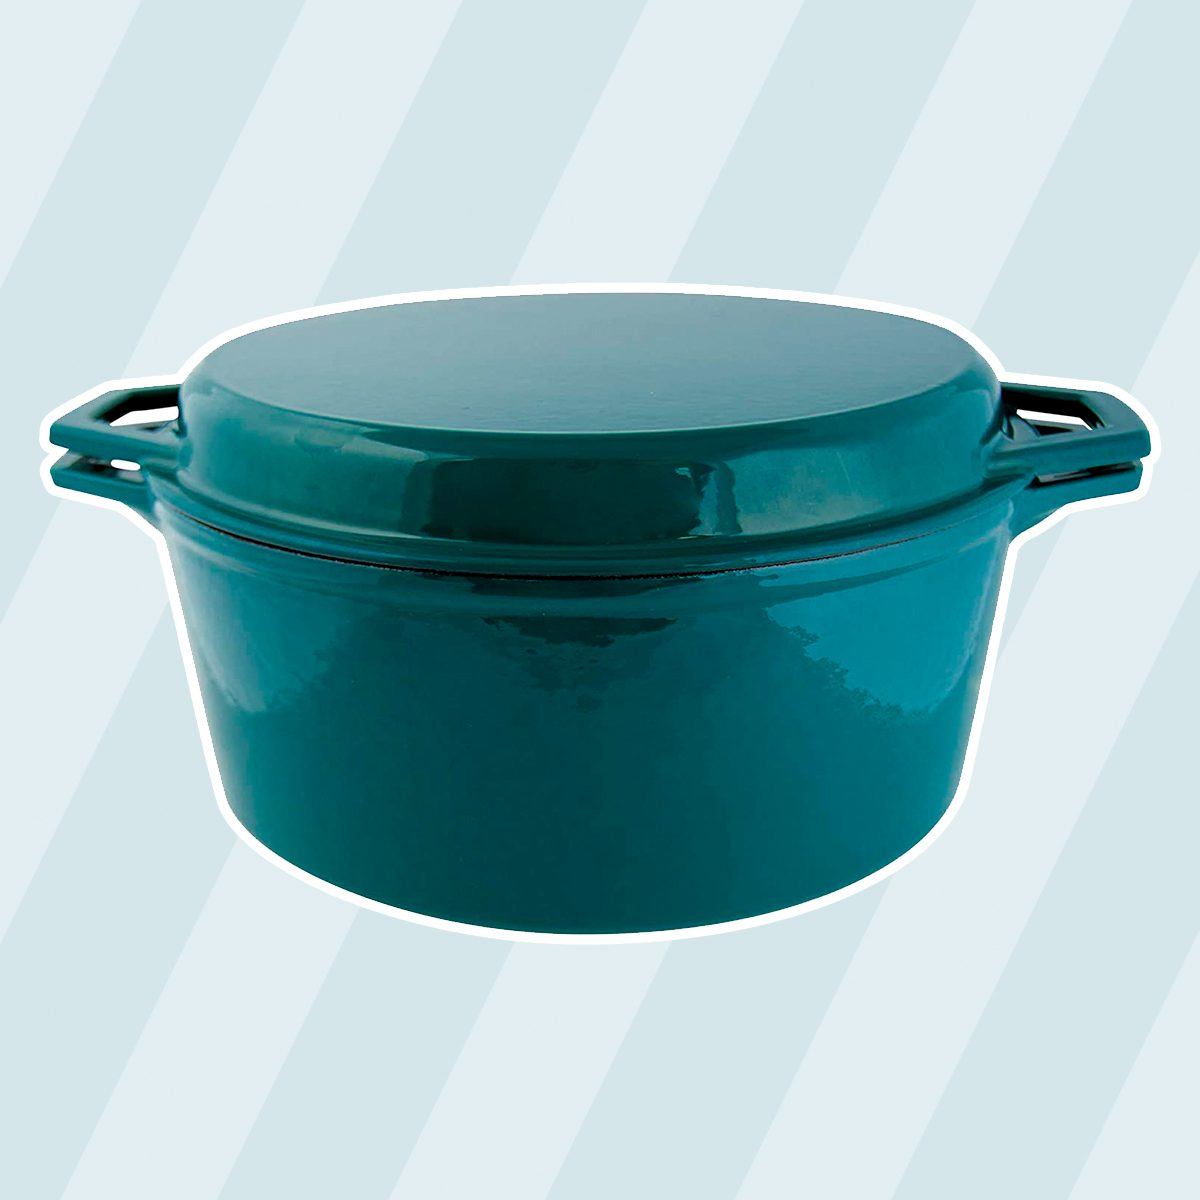 Multipurpose: Taste of Home's Dutch Oven with Grill Lid